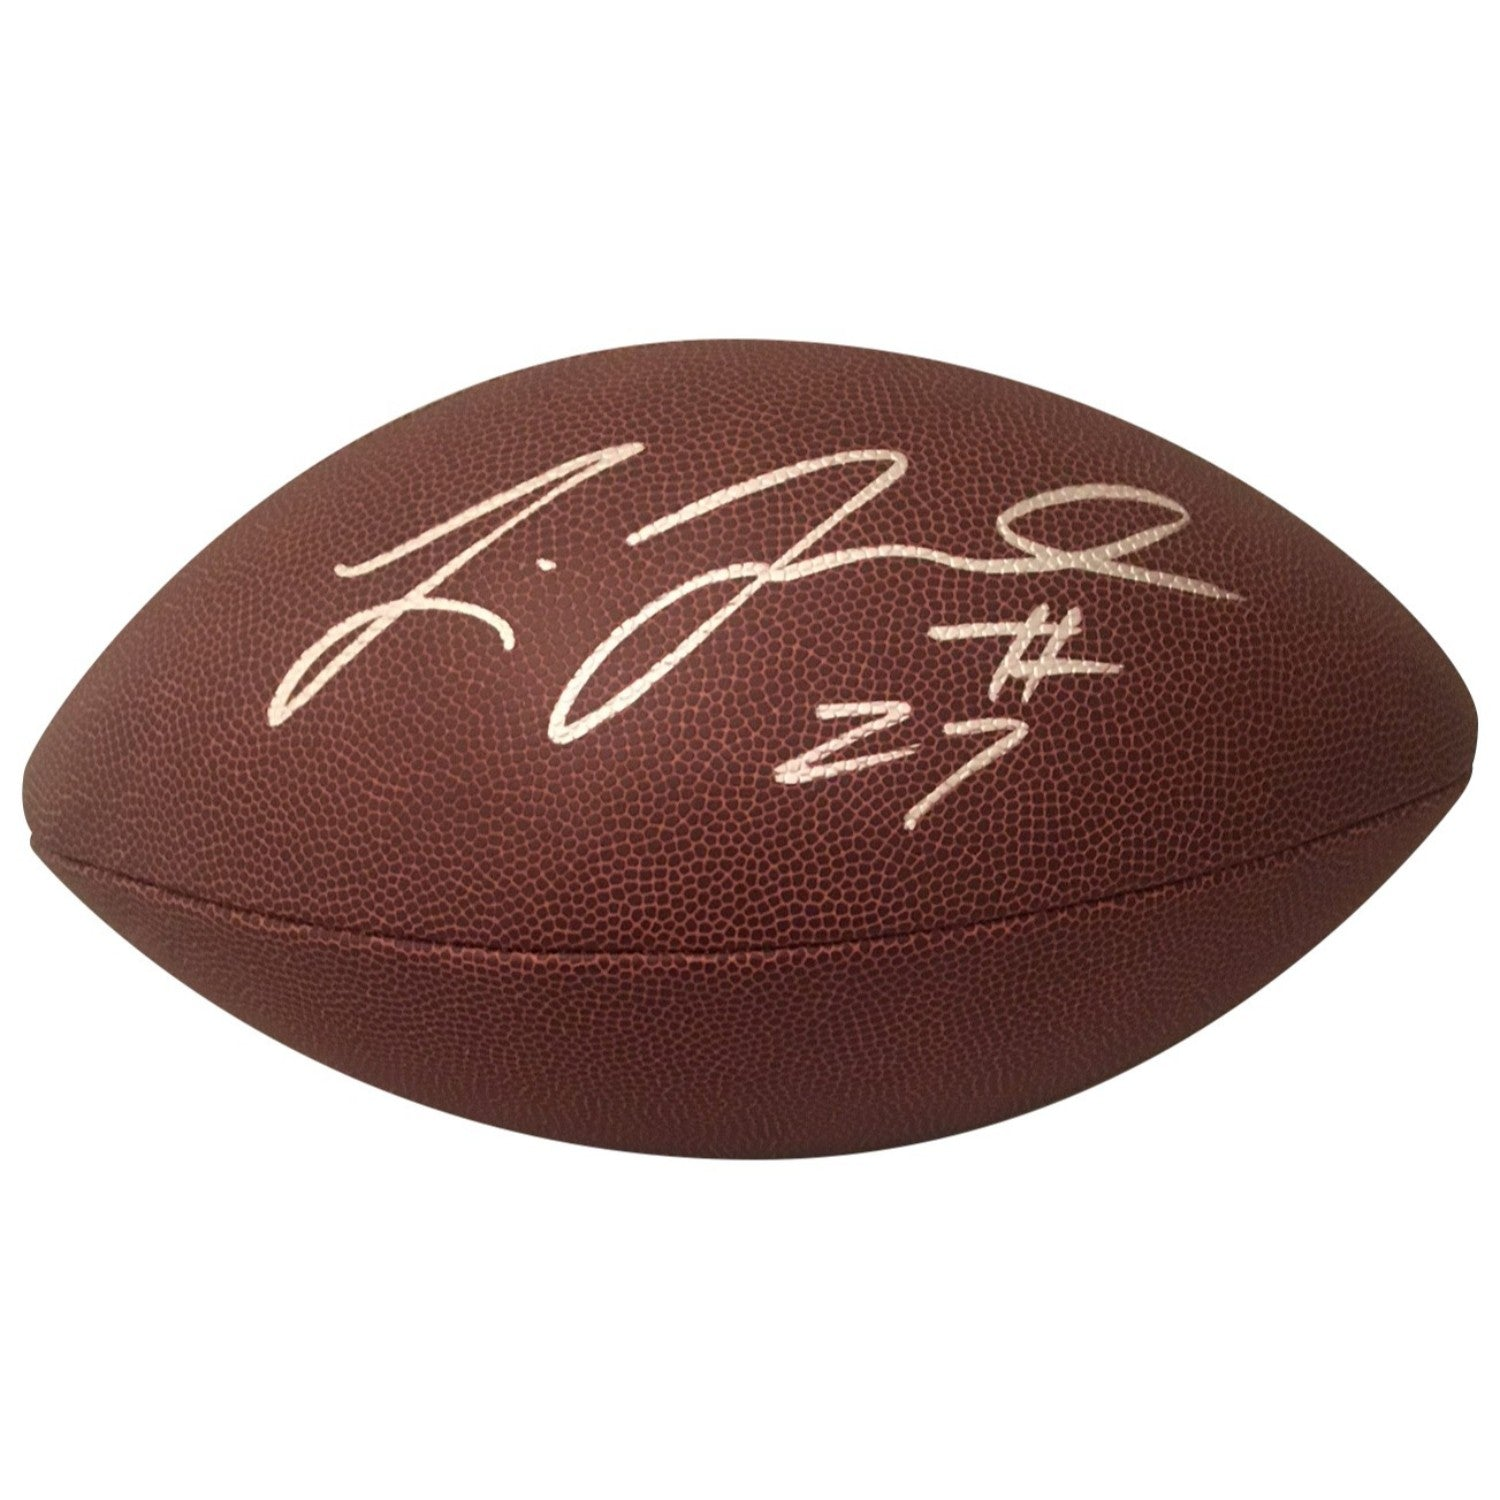 Leonard Fournette Jacksonville Jaguars LSU Tigers Autographed NFL Signed Football PSA DNA COA-Powers Sports Memorabilia